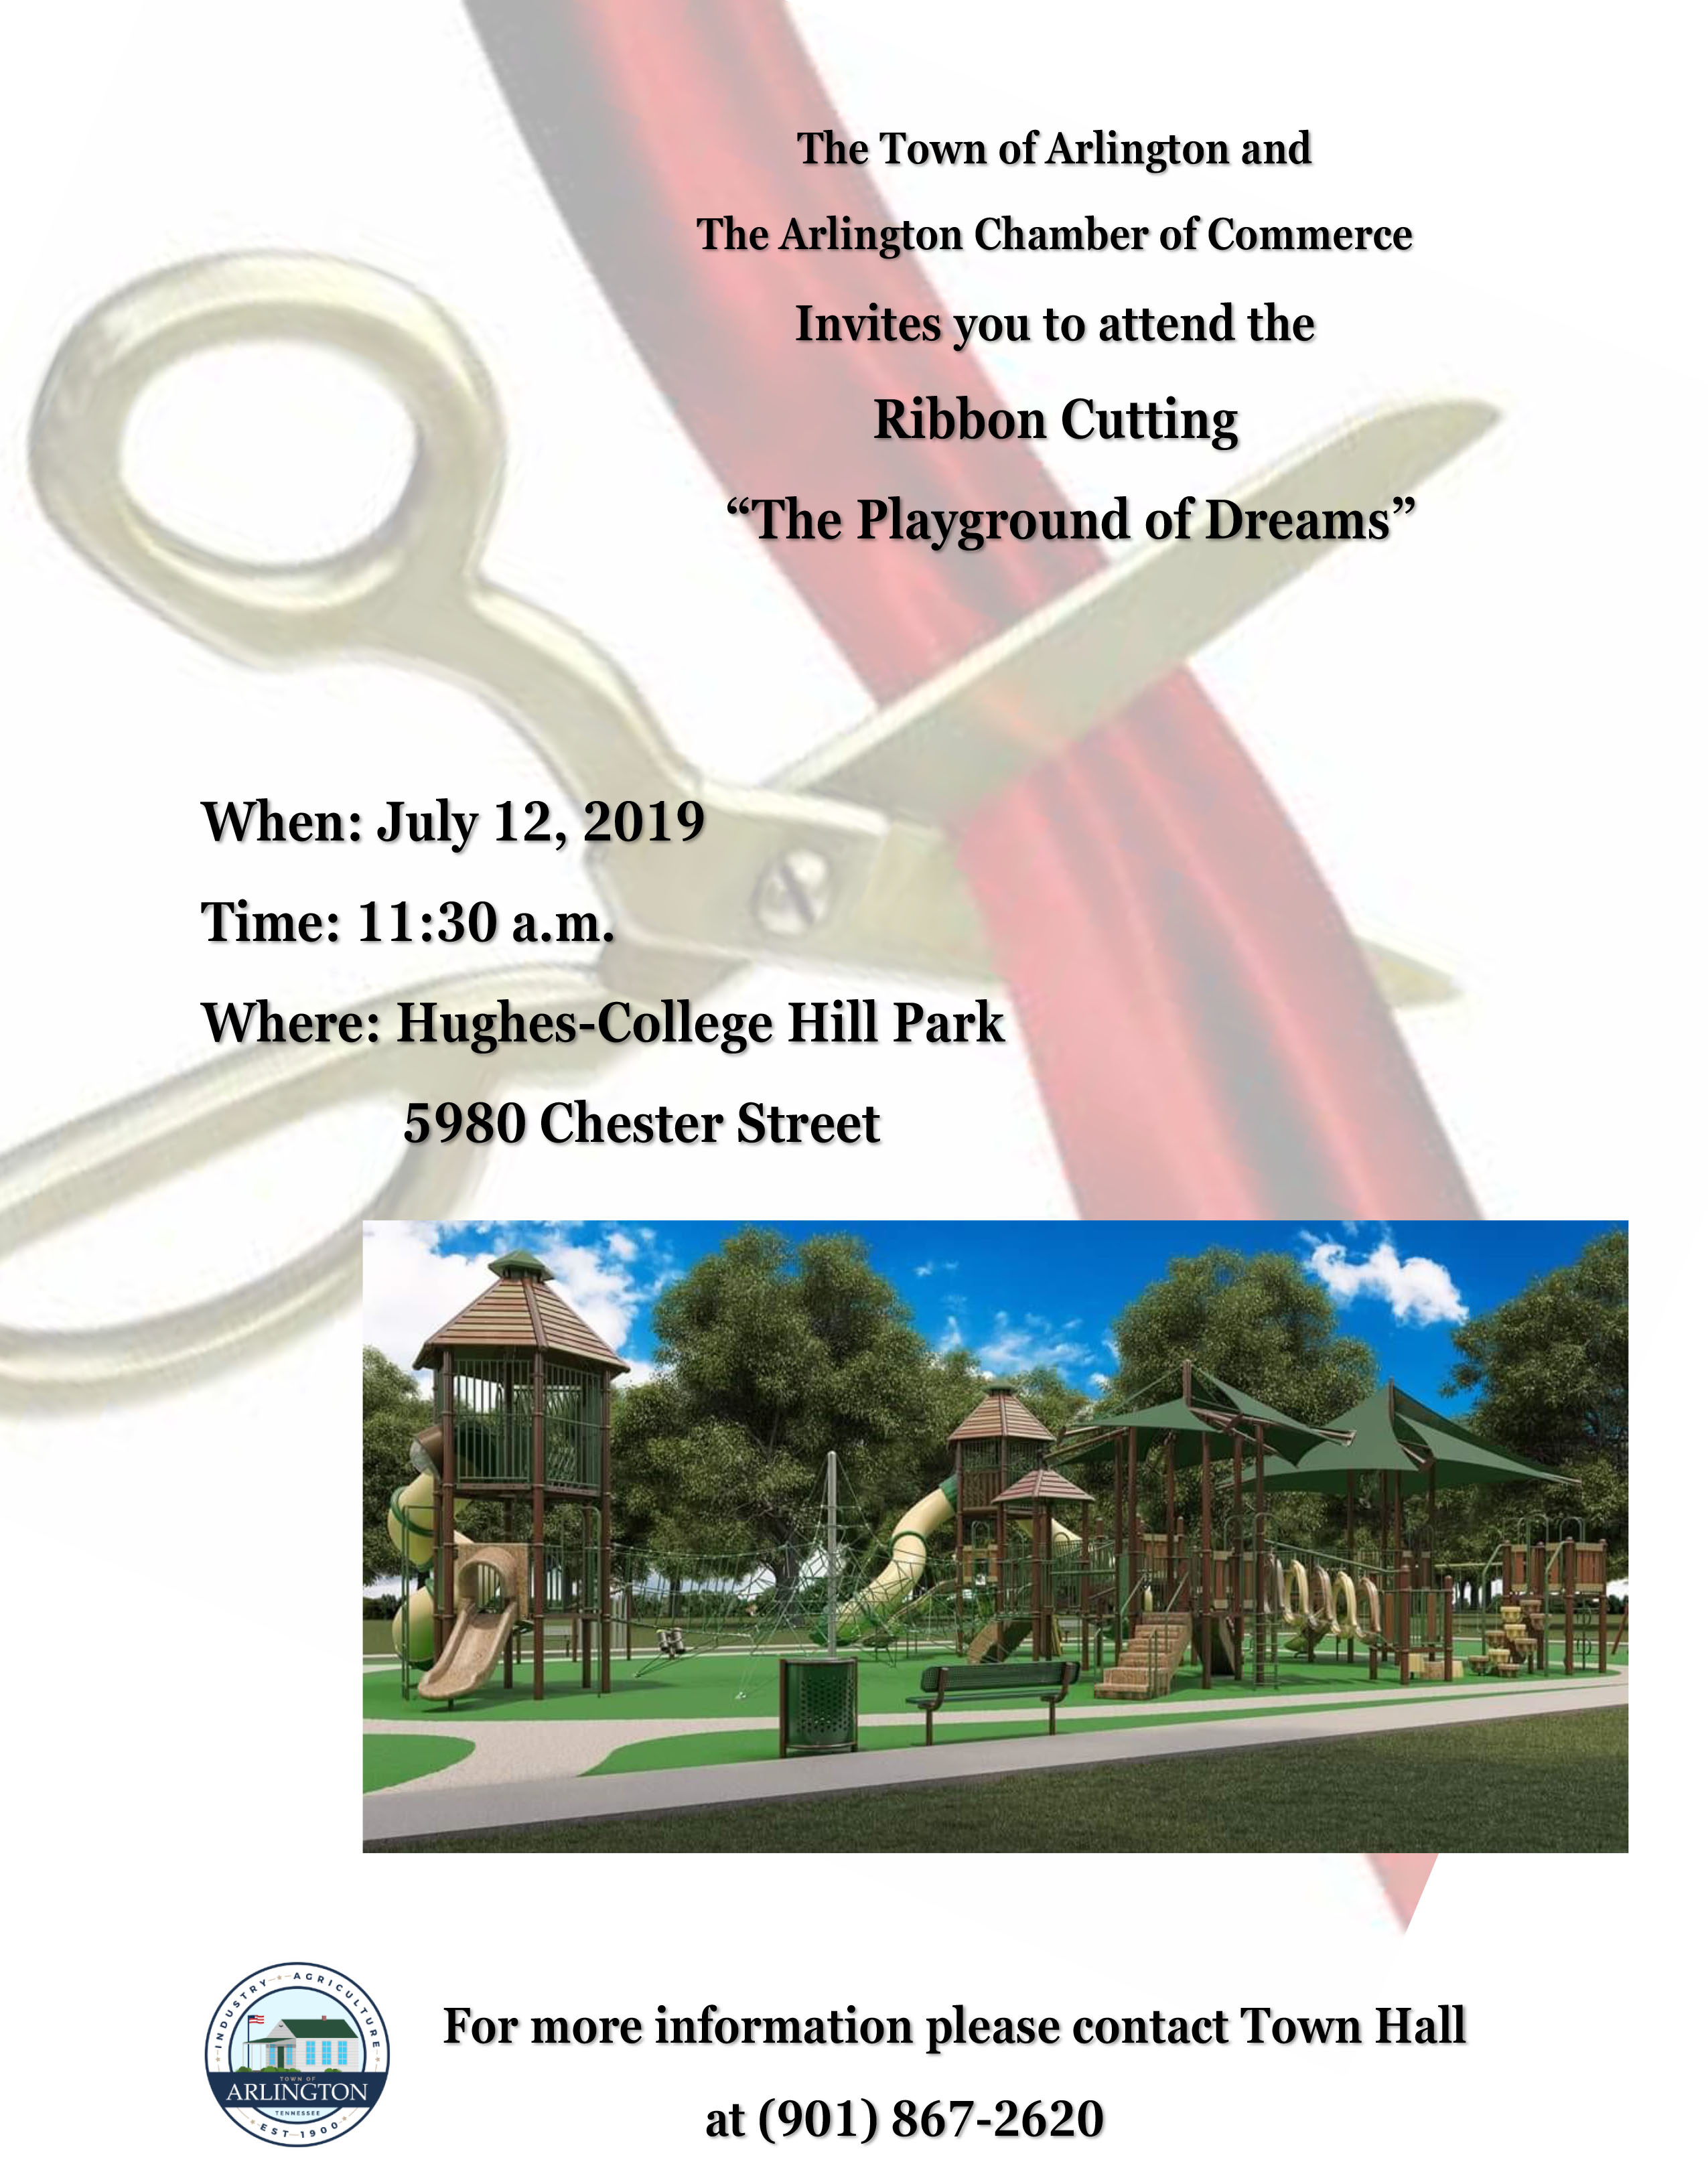 Playground of Dreams Ribbon Cutting